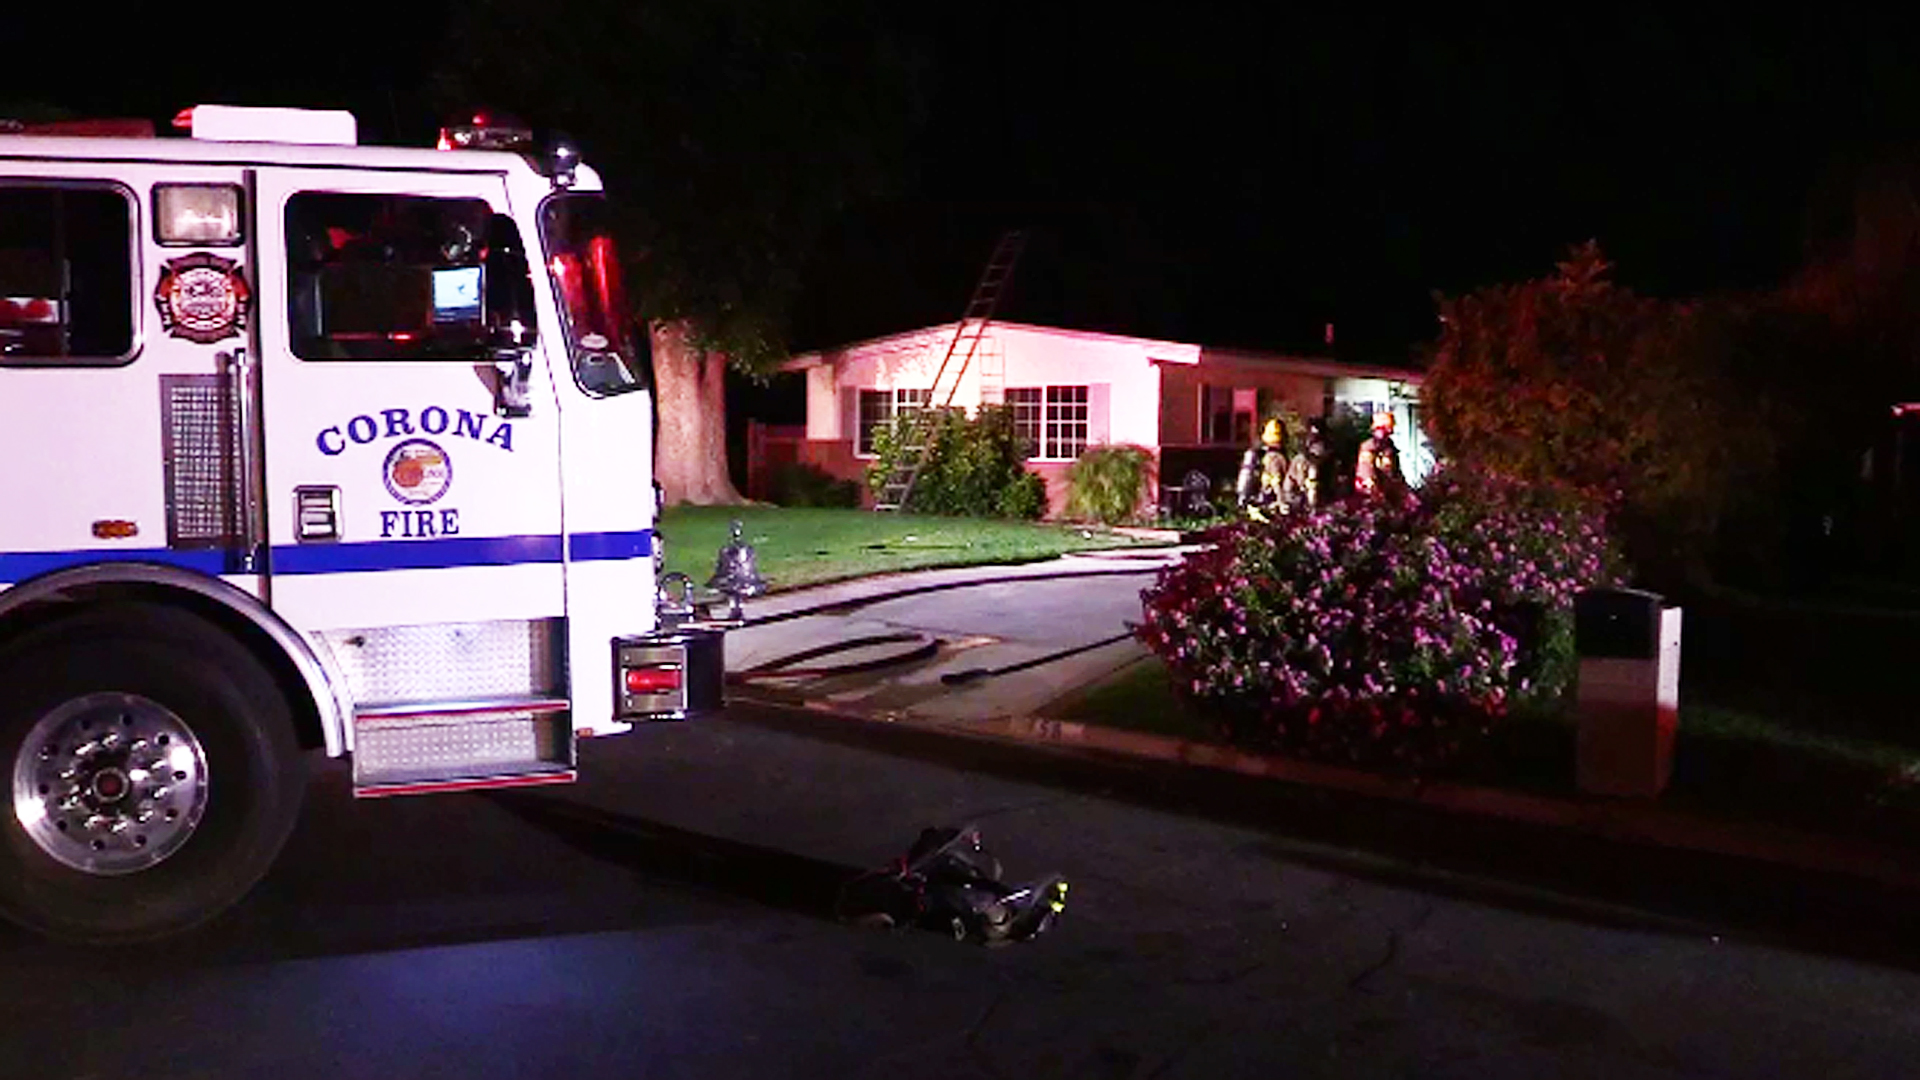 A man was found dead after a fire broke out at a home in the Corona area on July 25, 2019. (Credit: Casper News)